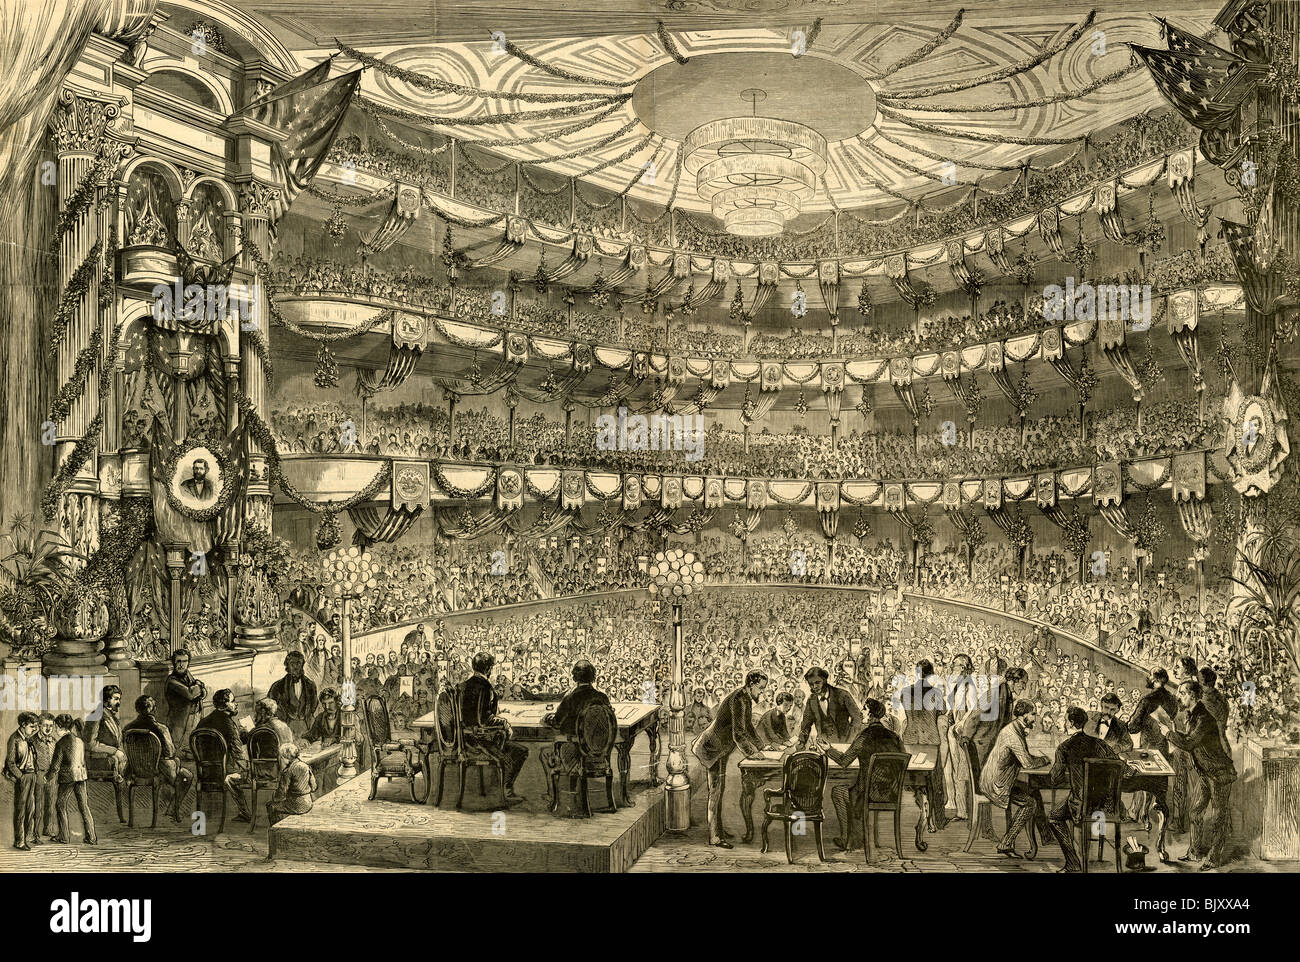 """Philadelphia ? der republikanischen Nationalkonvent in Sitzung in der Academy of Music, 5. Juni 1872"" Stockbild"